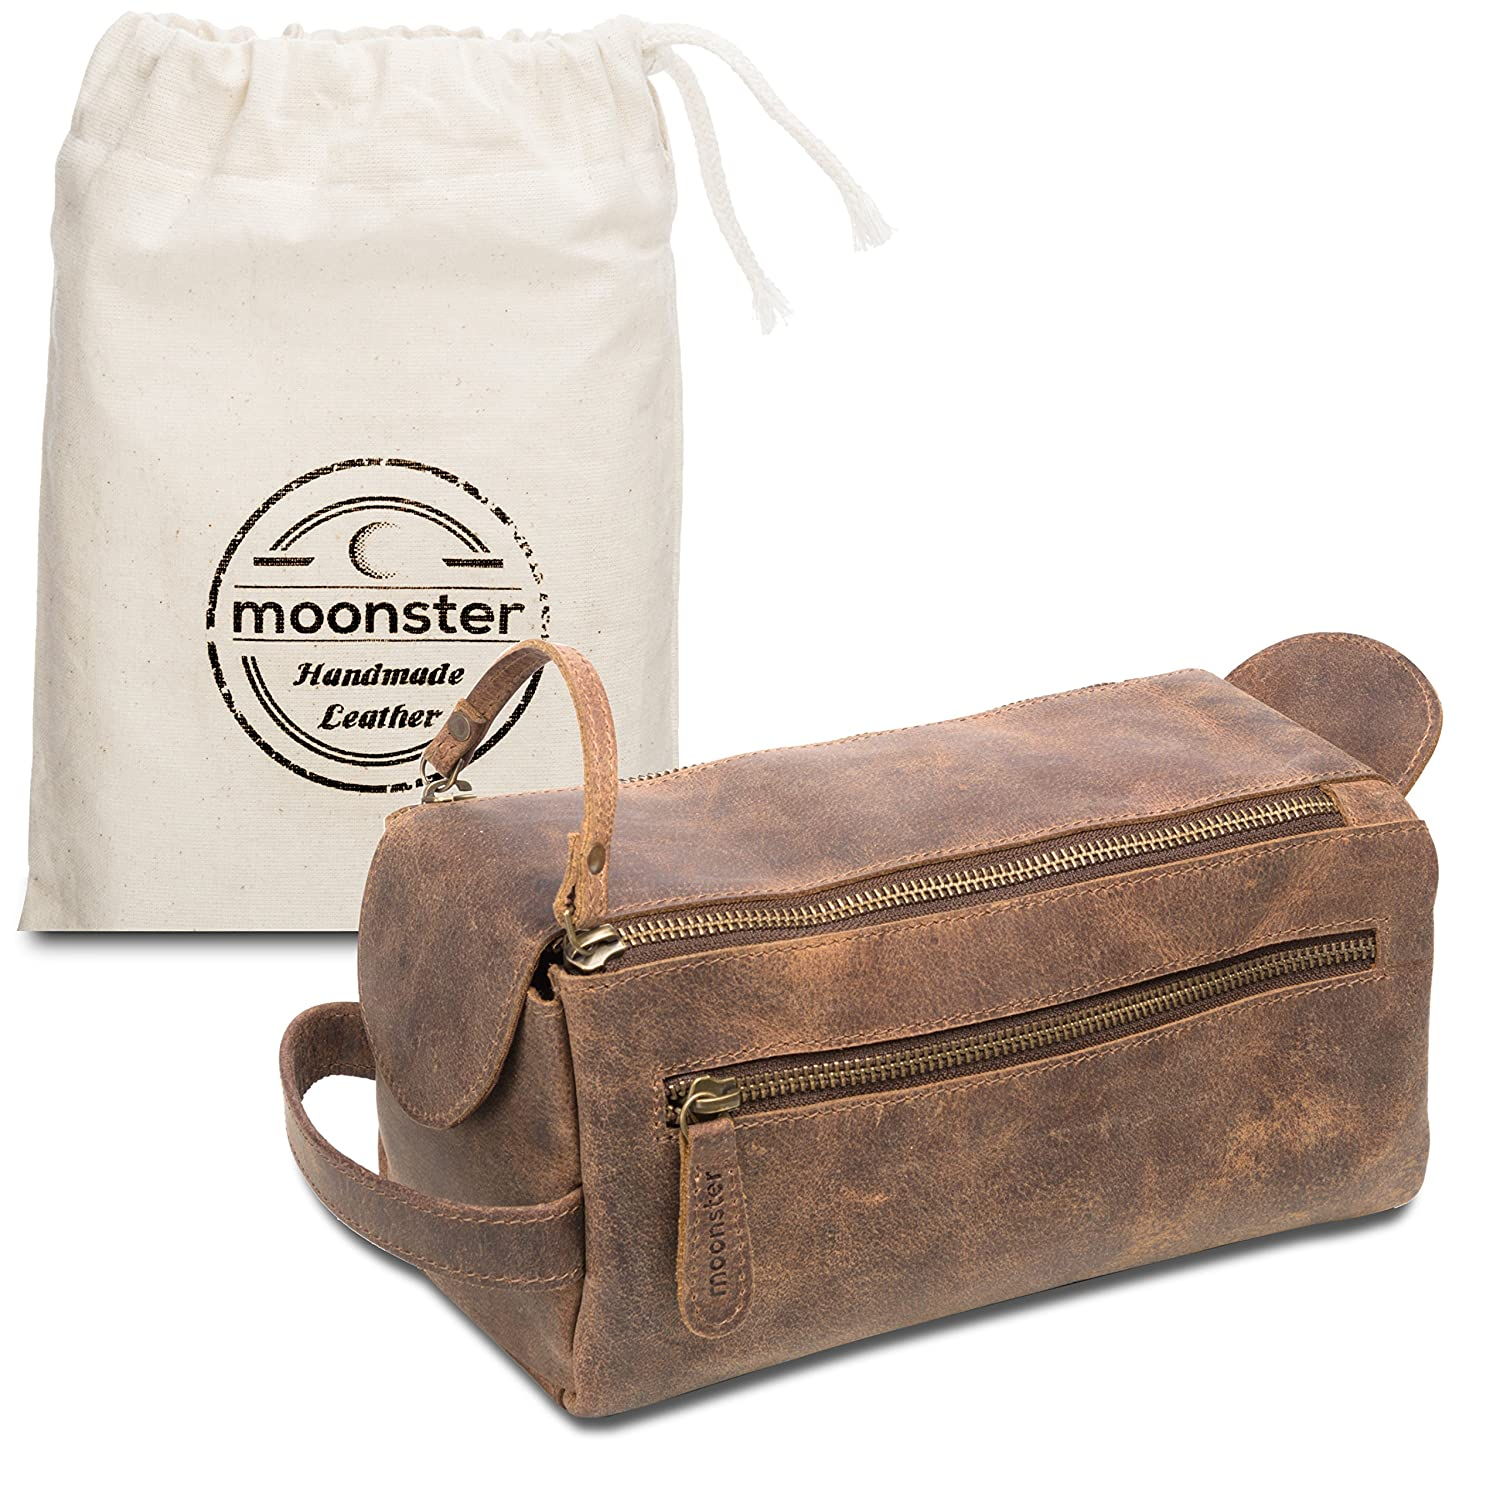 Leather Toiletry Bag for Men & Women - Stylish, Practical and Thicker Than Other Bags - This Handmade Vintage Dopp Kit is Small, Sturdy and Water Resistant - Store All Your Travel Toiletries in Style